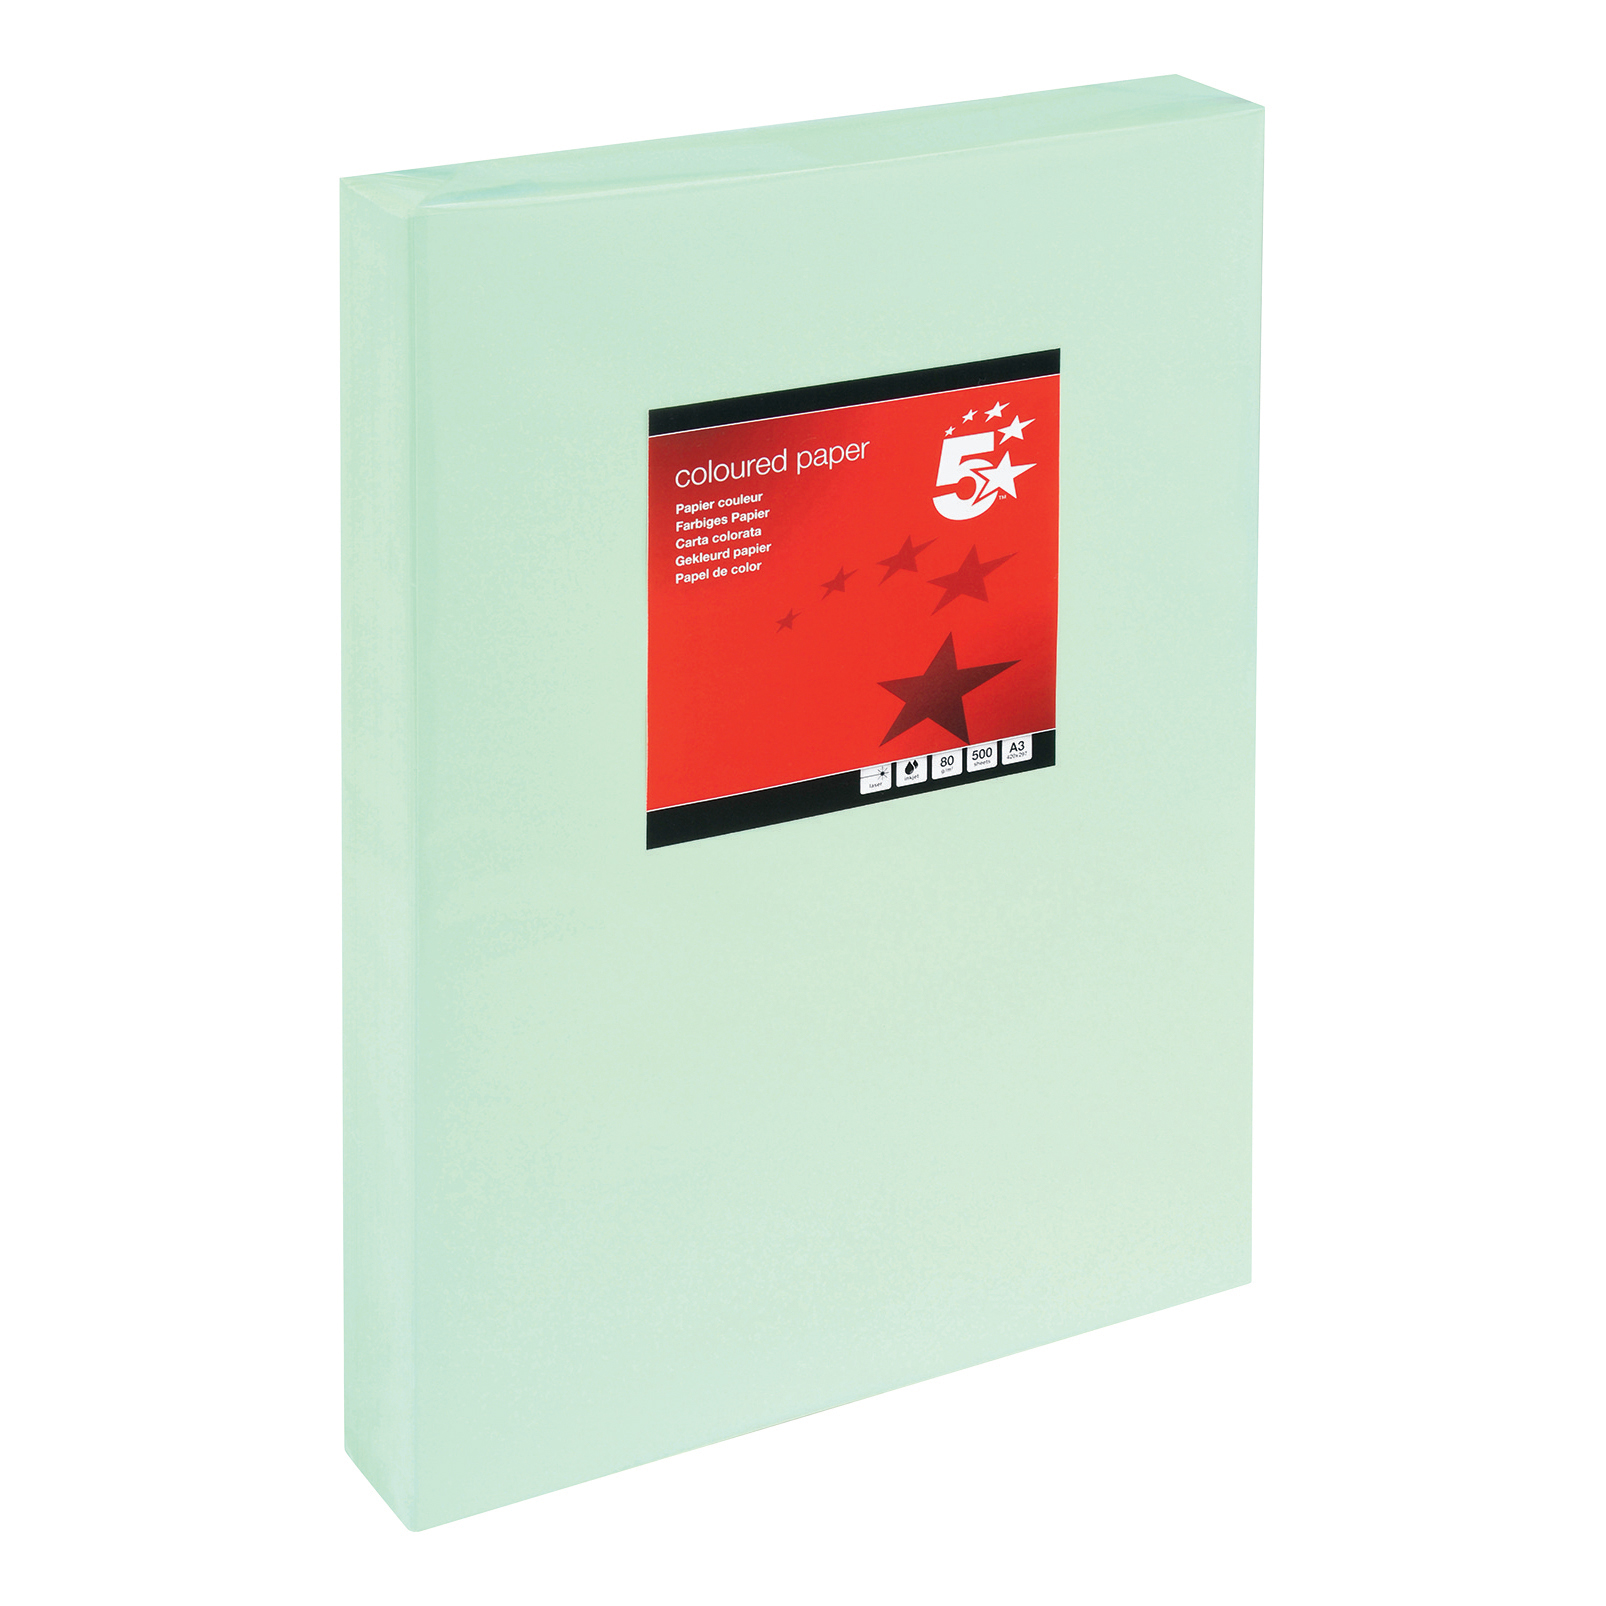 5 Star Office Coloured Copier Paper Multifunctional Ream-Wrapped 80gsm A3 Light Green 500 Sheets